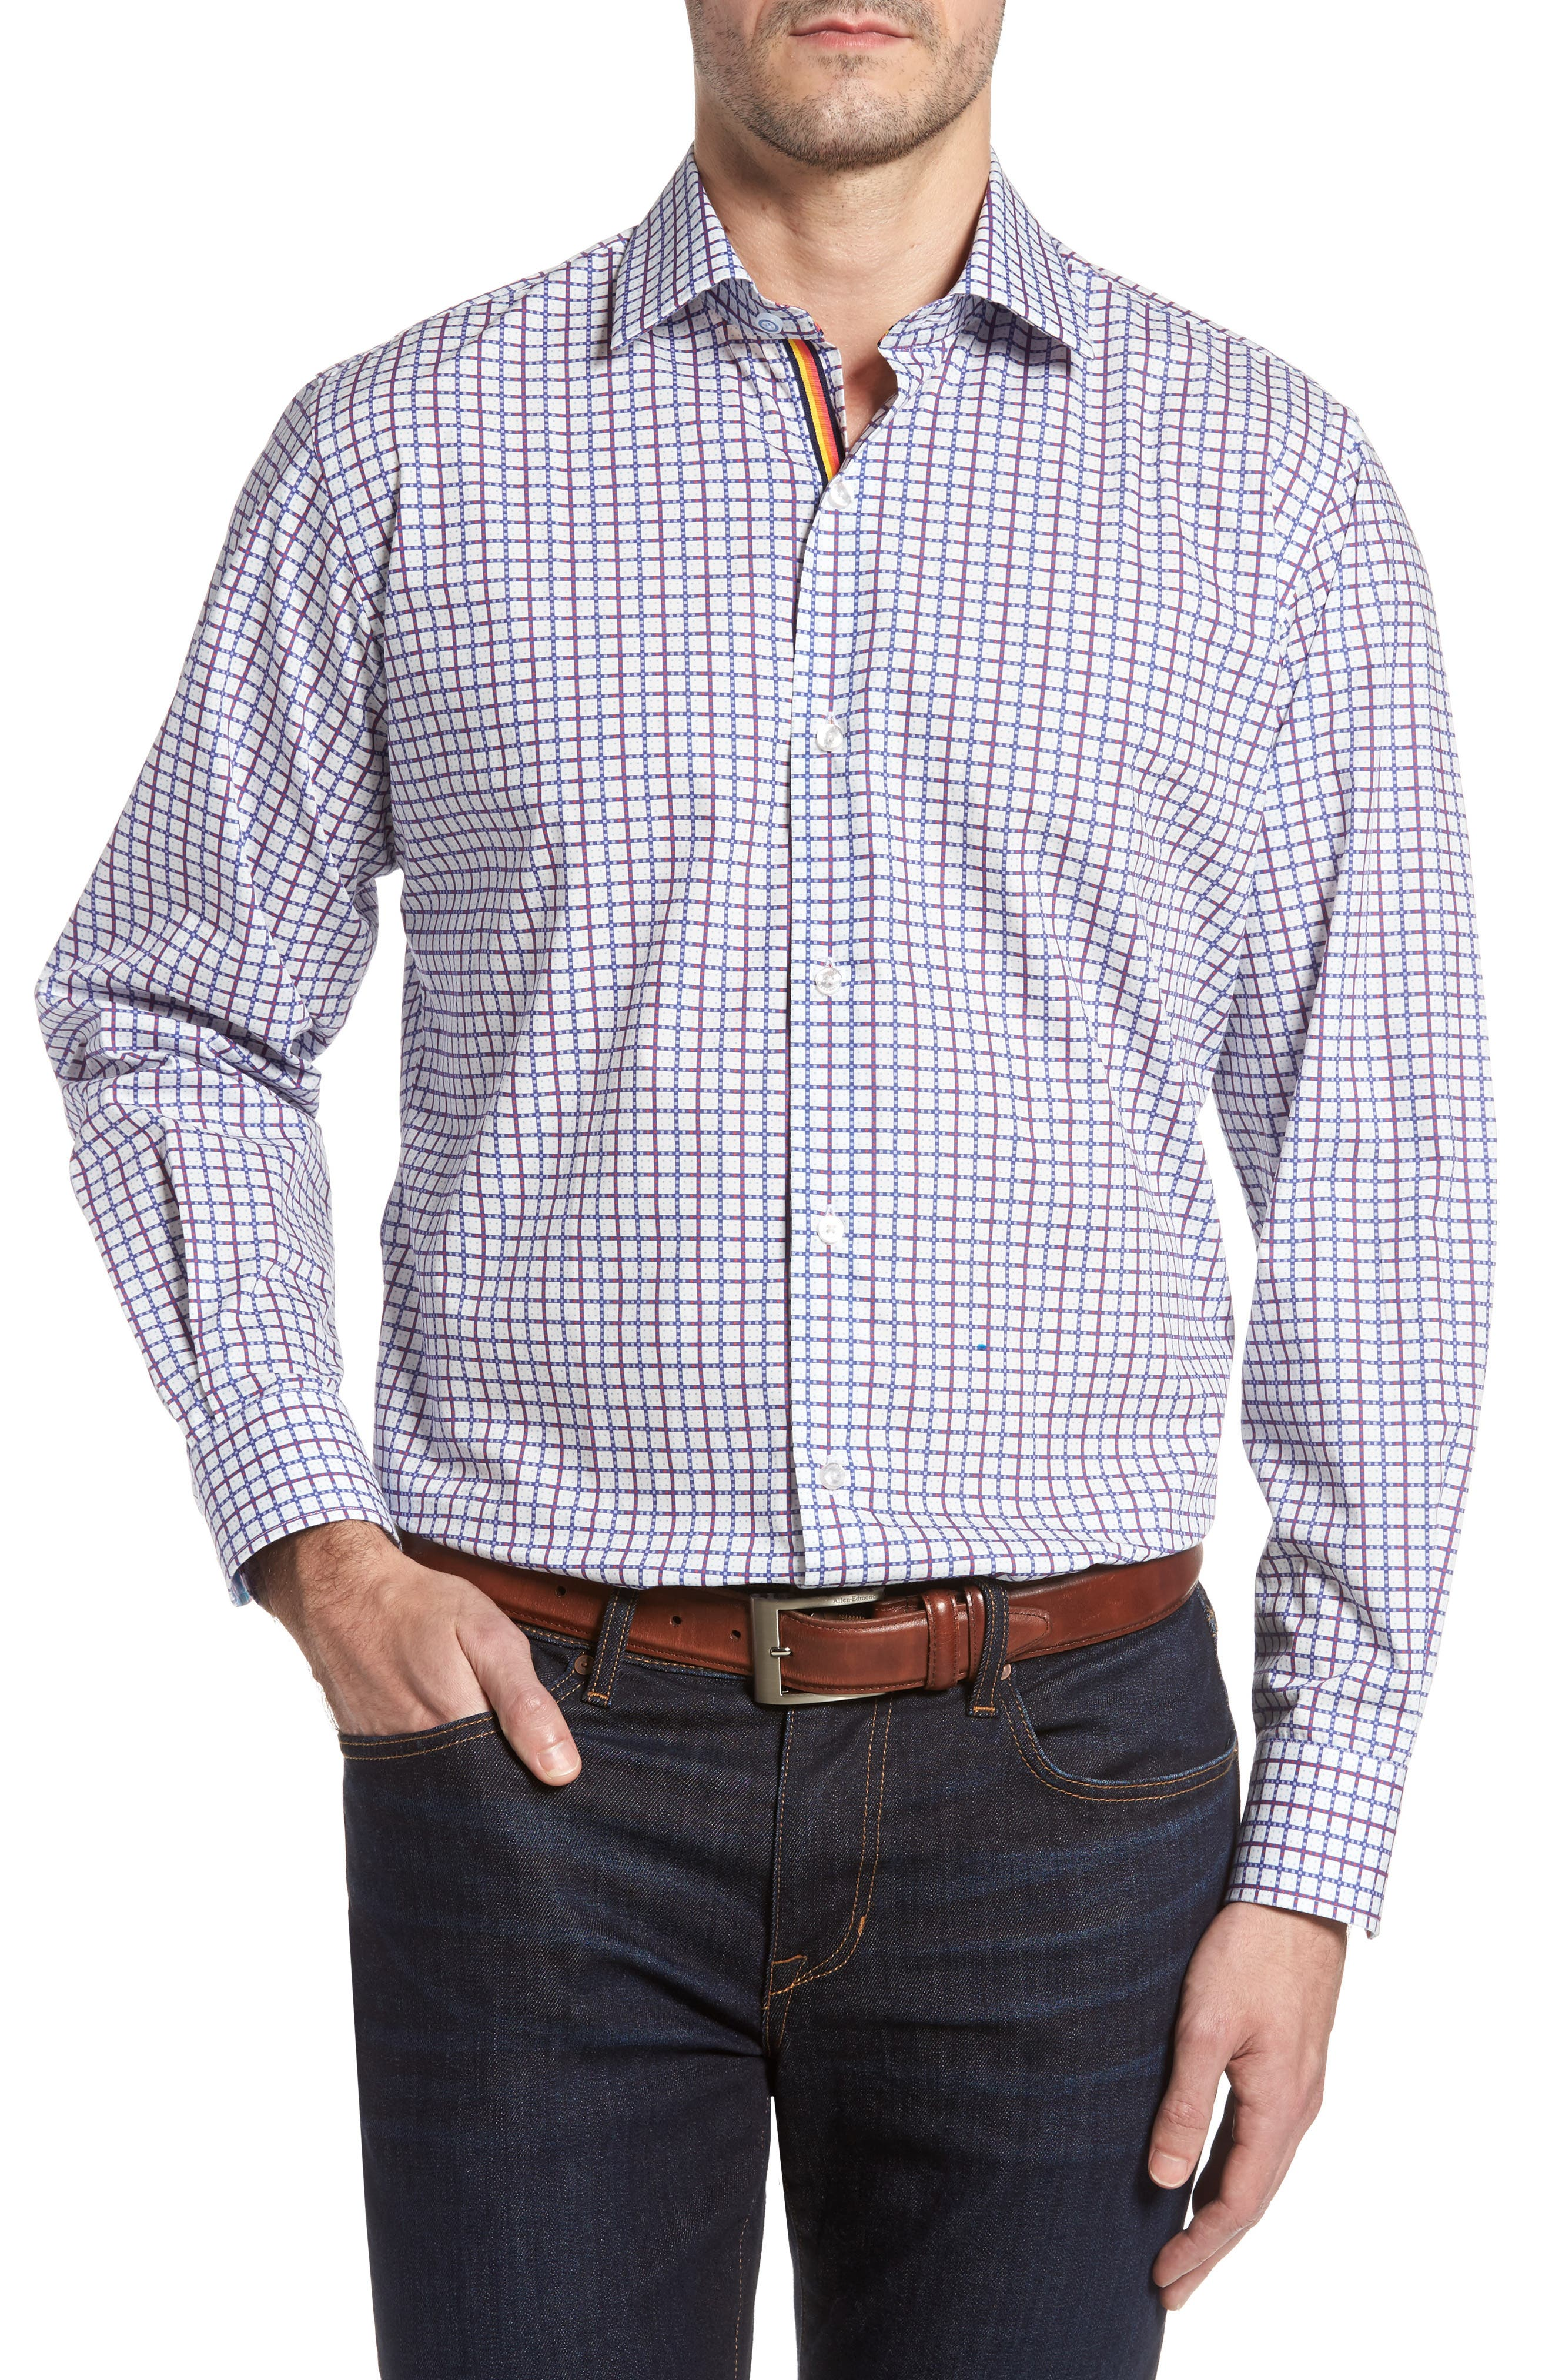 Alternate Image 1 Selected - TailorByrd Magnolia Sport Shirt